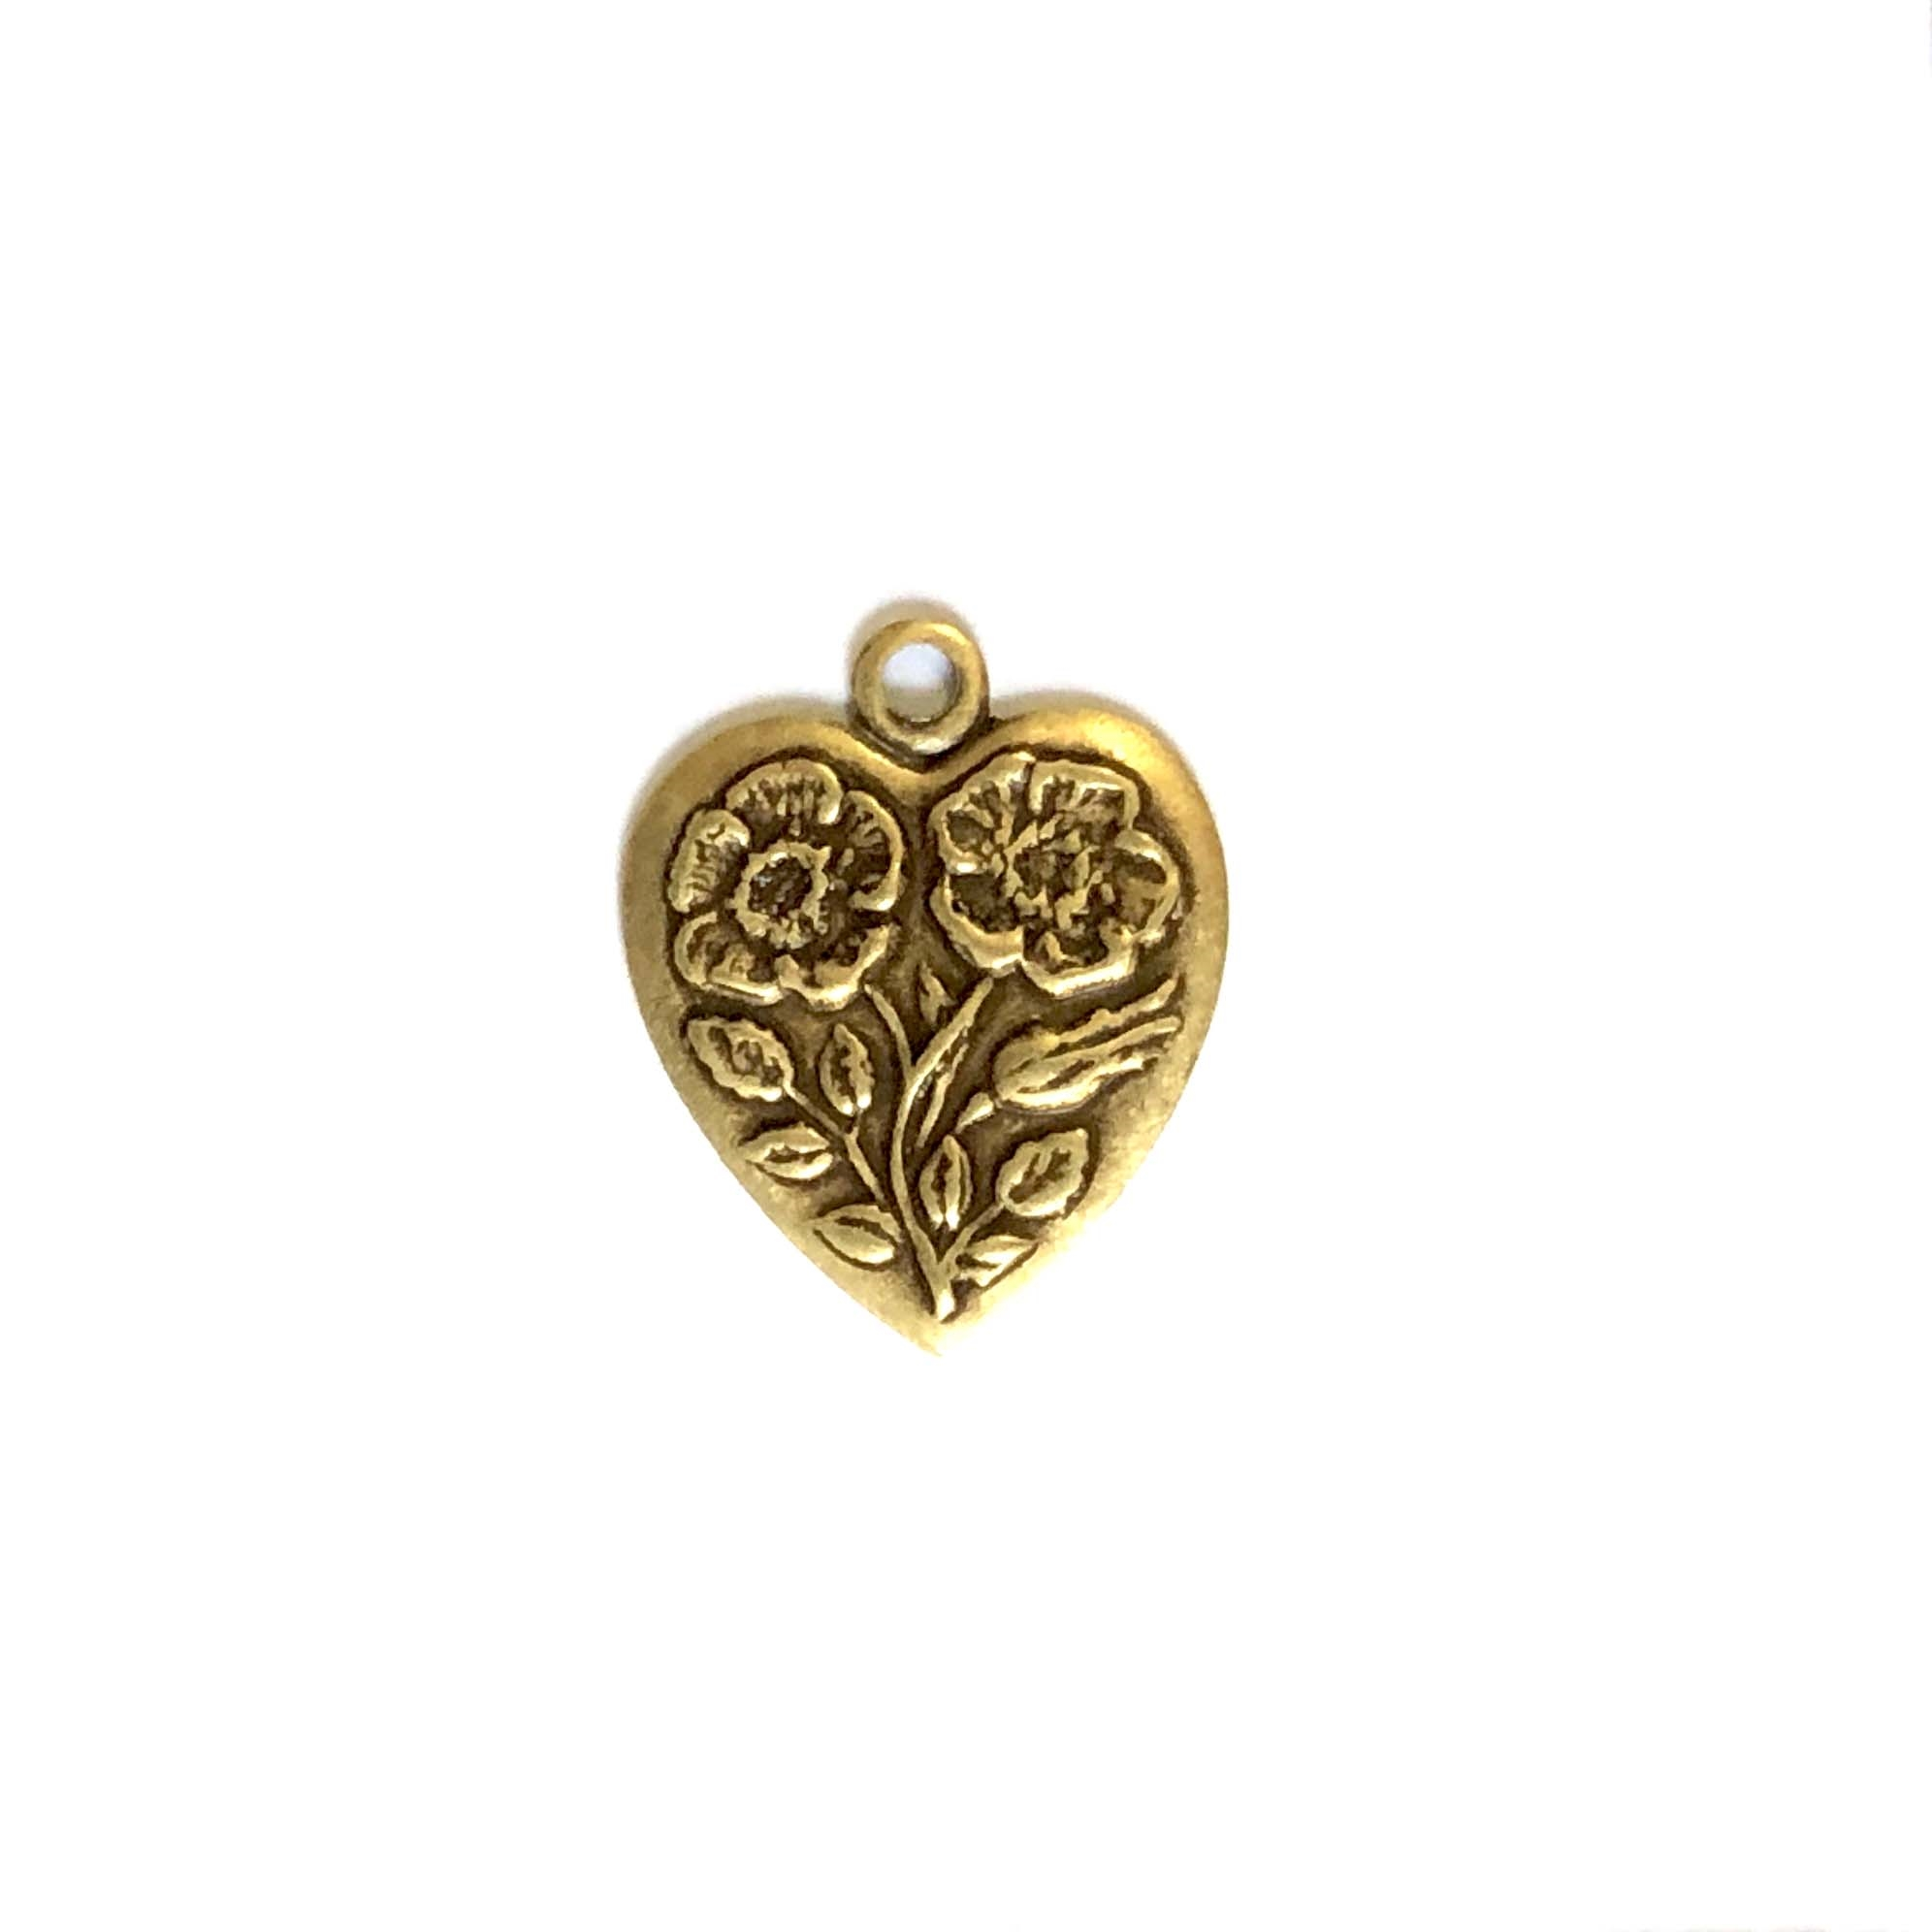 brass charms, heart charms, brass ox, antique brass, 07114, floral heart charms, vintage jewelry supplies, brass jewelry parts, jewelry findings, US made, nickel free, floral charms, bsueboutiques